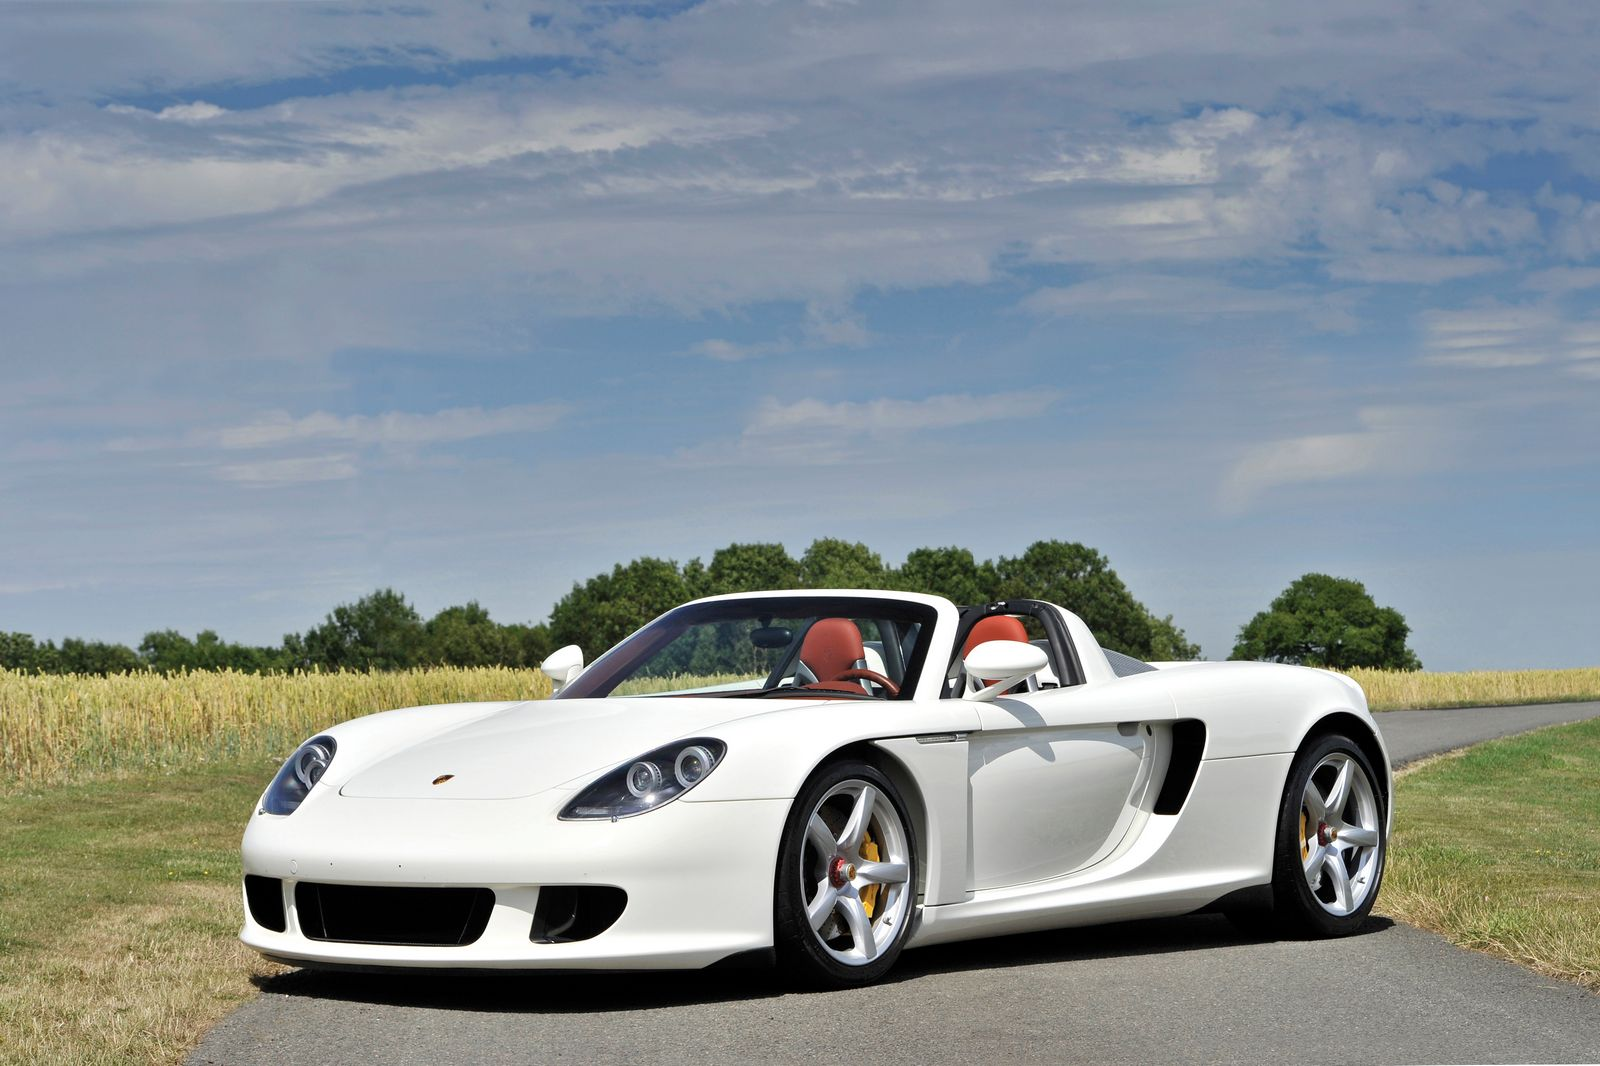 whimiscally white porsche carrera gt heading to auction. Black Bedroom Furniture Sets. Home Design Ideas